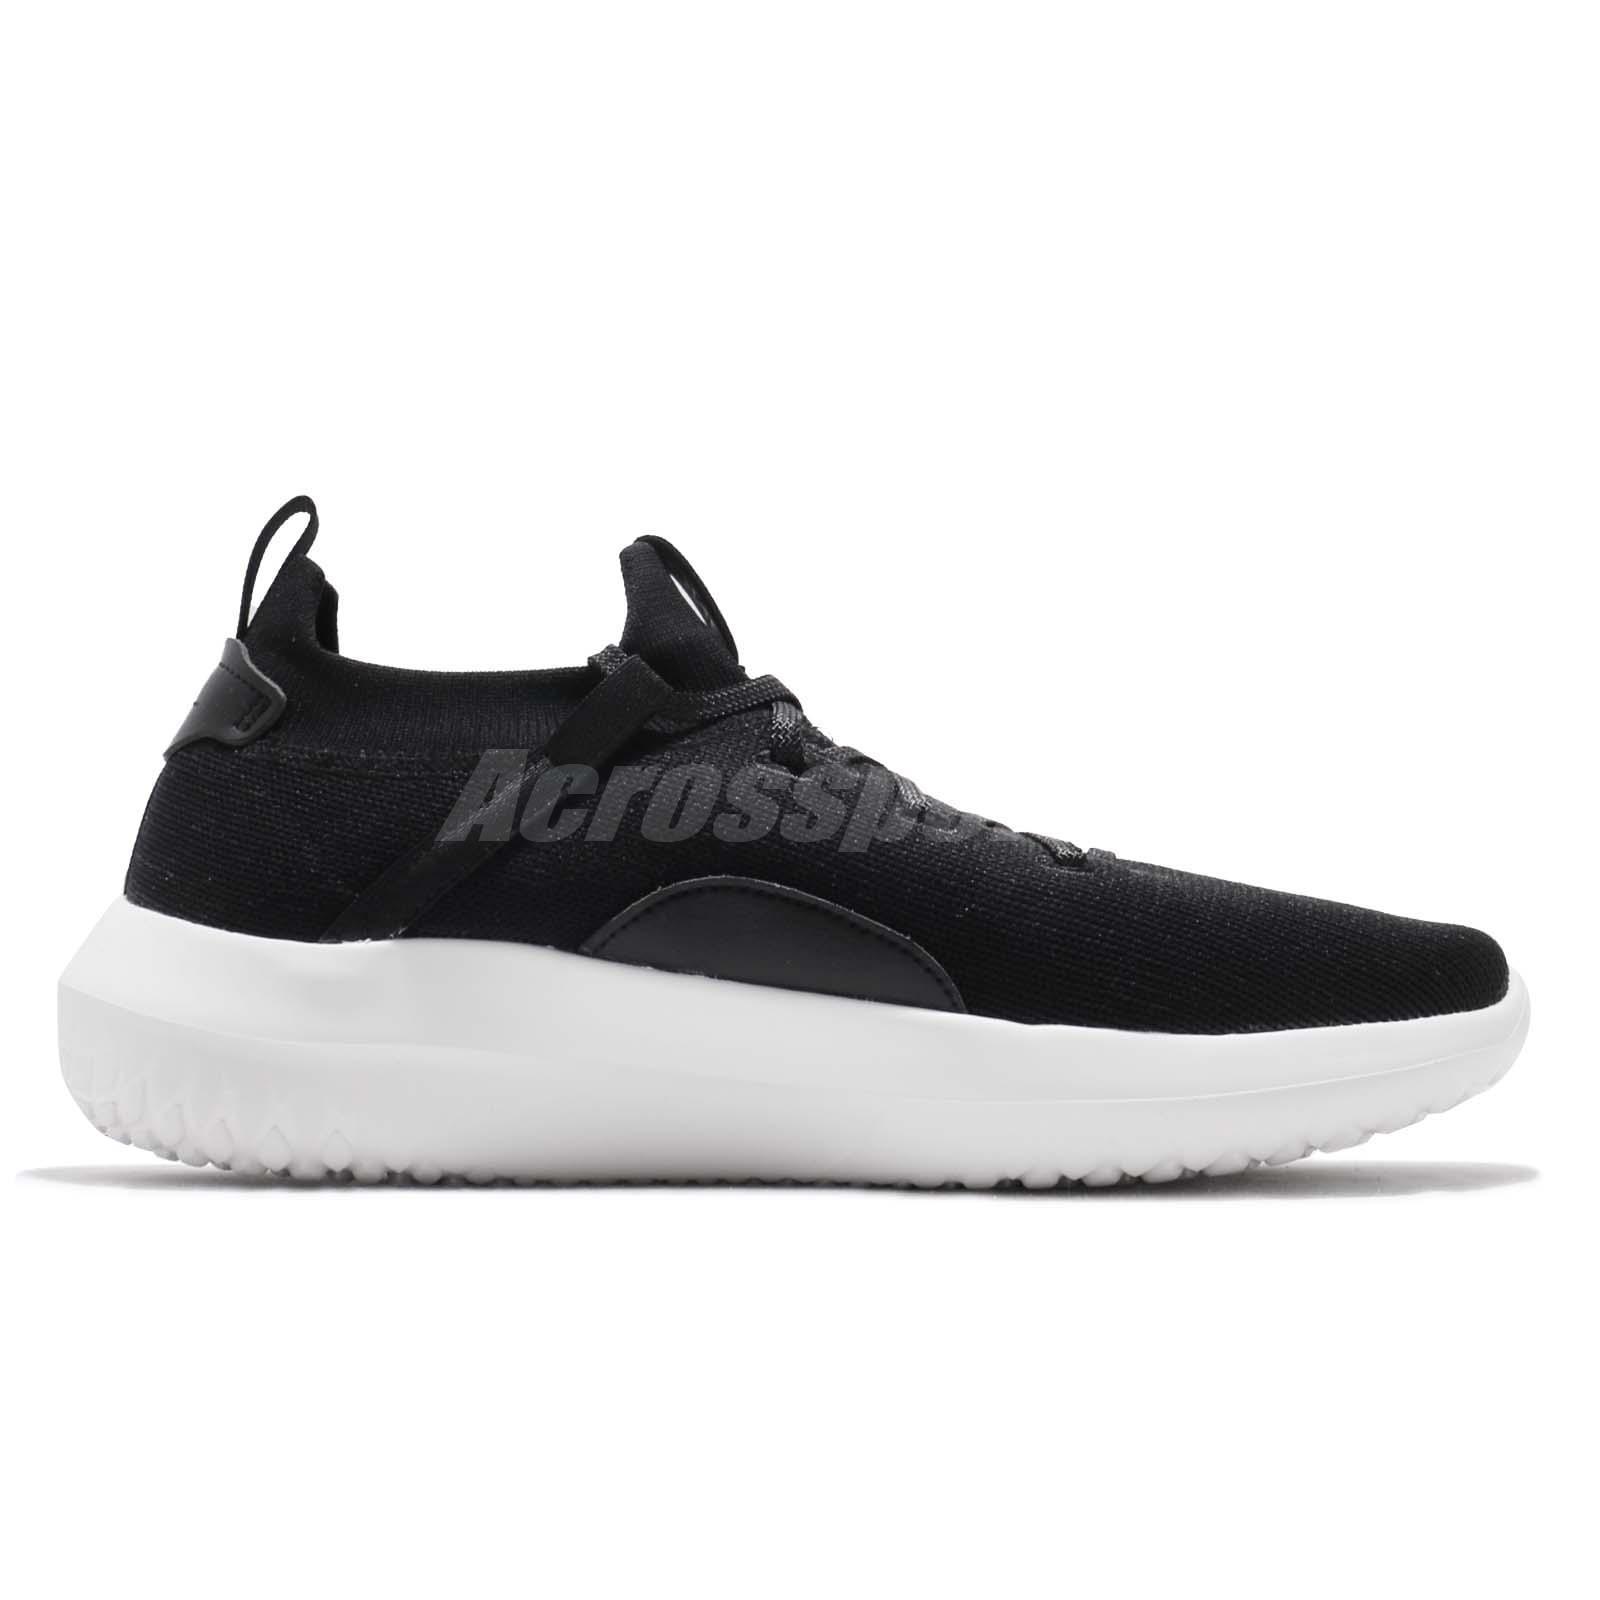 Details about Skechers Downtown Ultra Core Black White Men Running Shoes Sneakers 18548 BKW